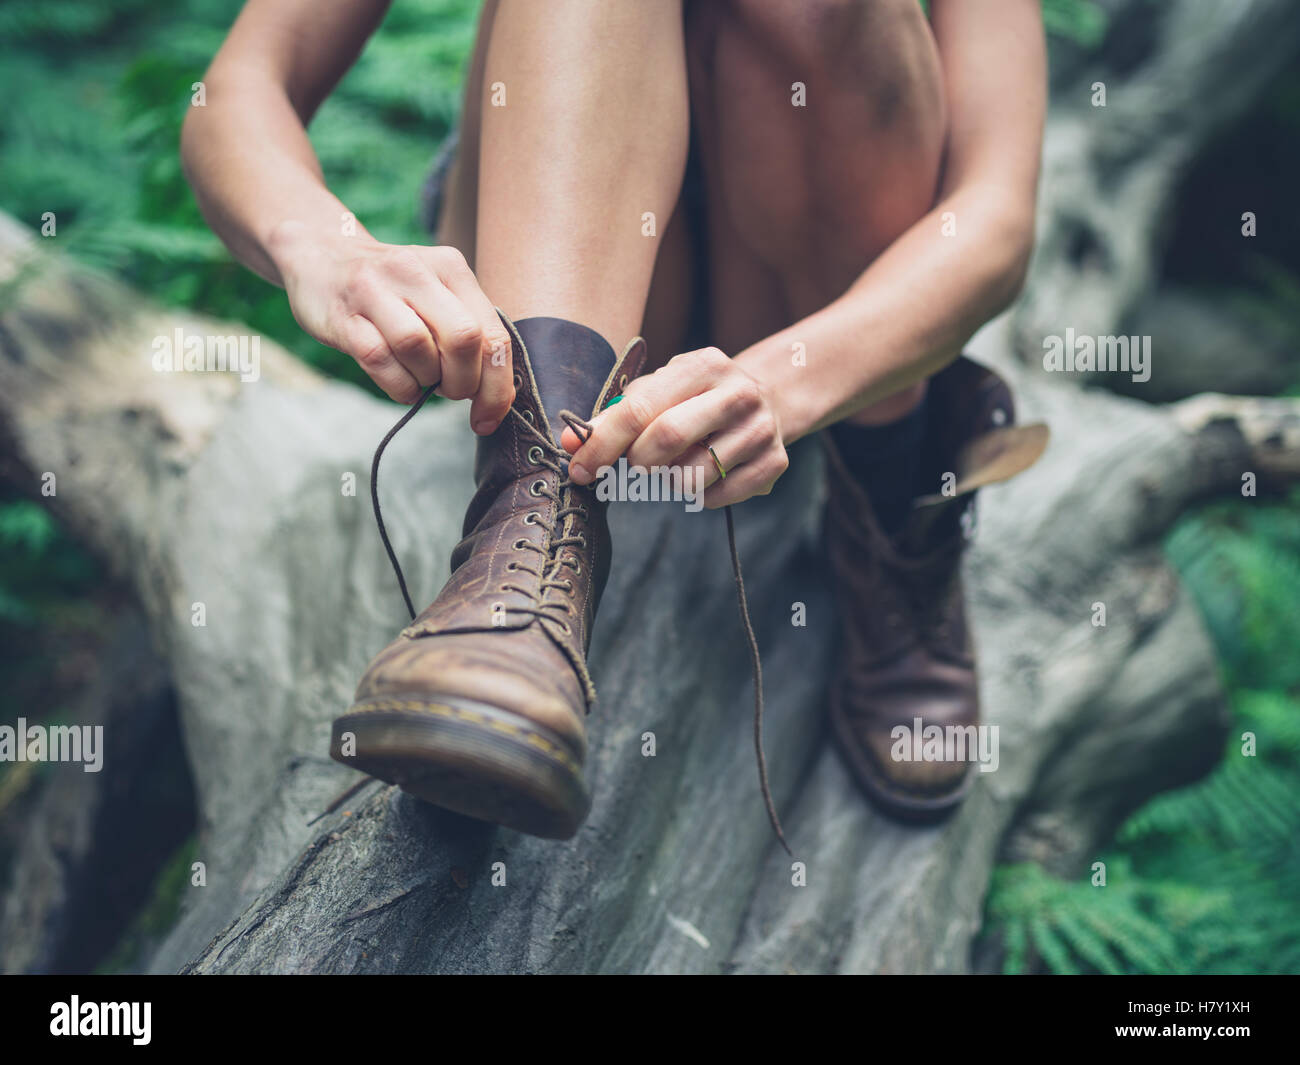 A young woman is sitting on a log in the forest and is tying her boots - Stock Image